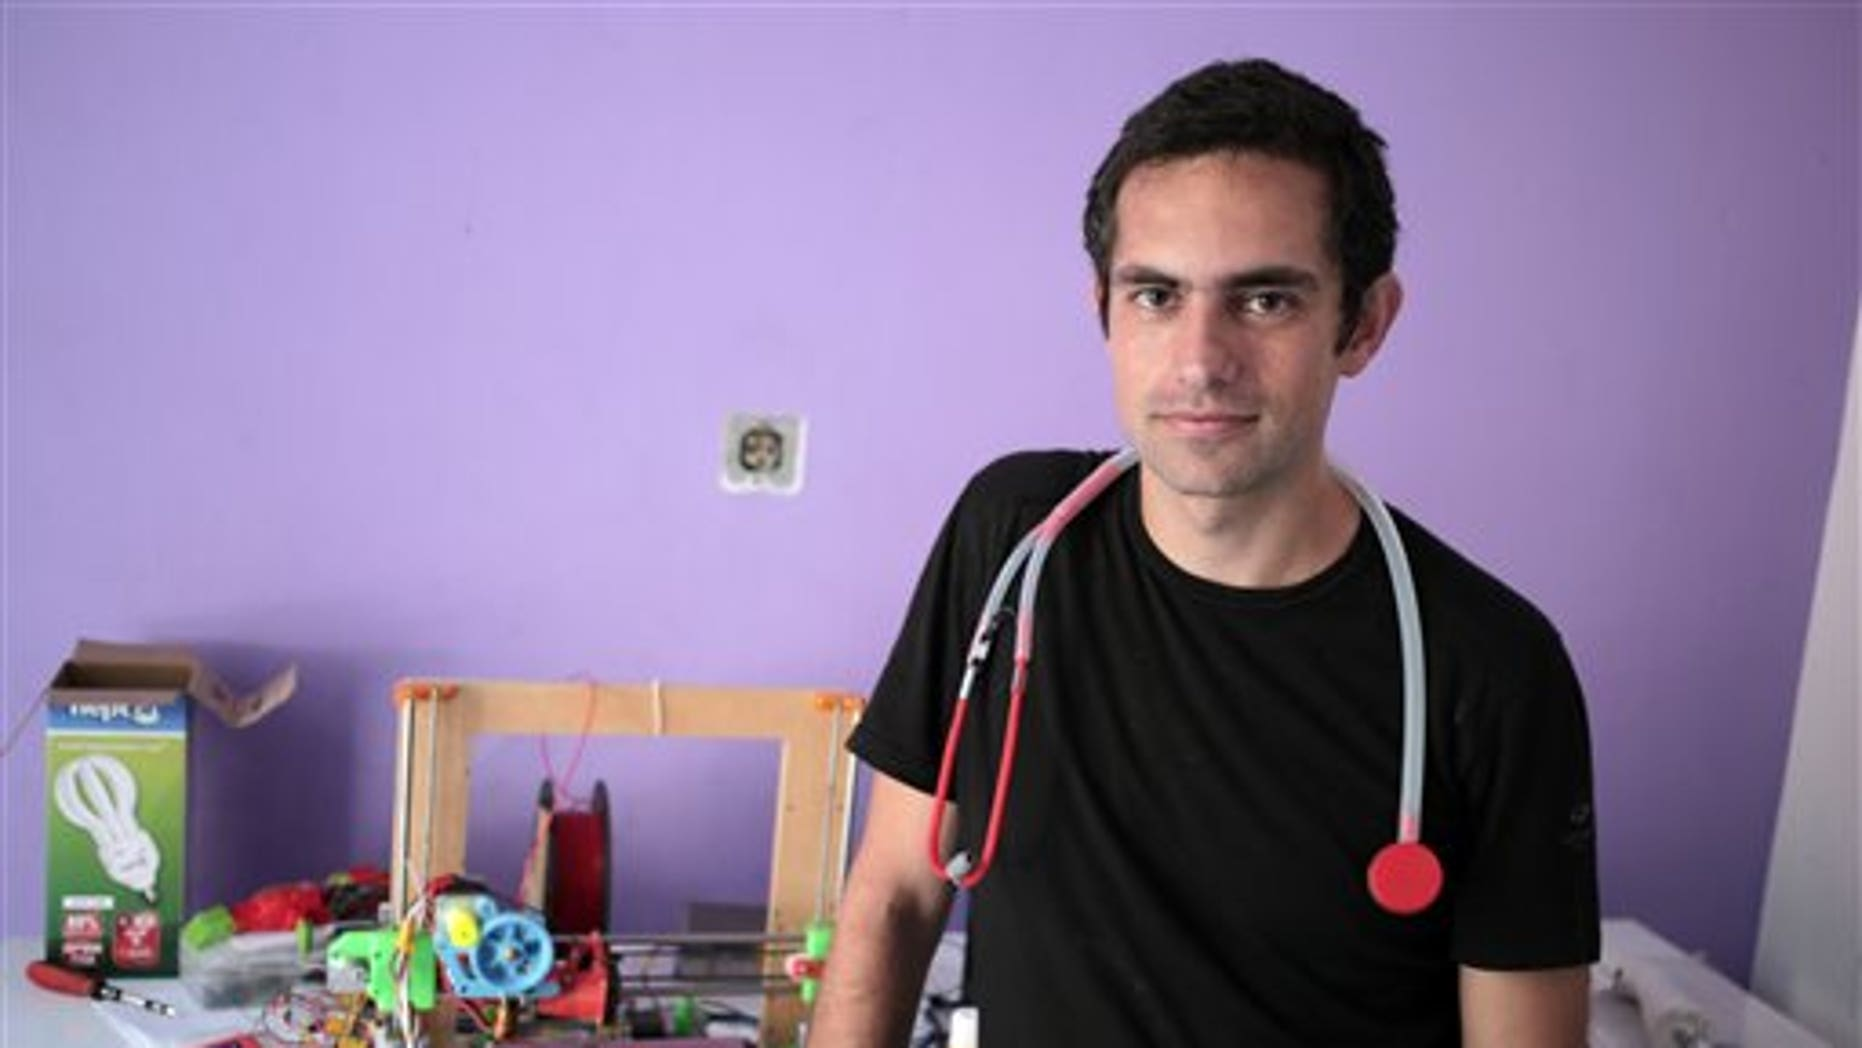 In this Monday, Sept. 7, 2015 photo, Dr. Tarek Loubani, a Palestinian-Canadian doctor, poses for a picture with 3D printed stethoscope around his neck, in Gaza City. (AP Photo/ Khalil Hamra)